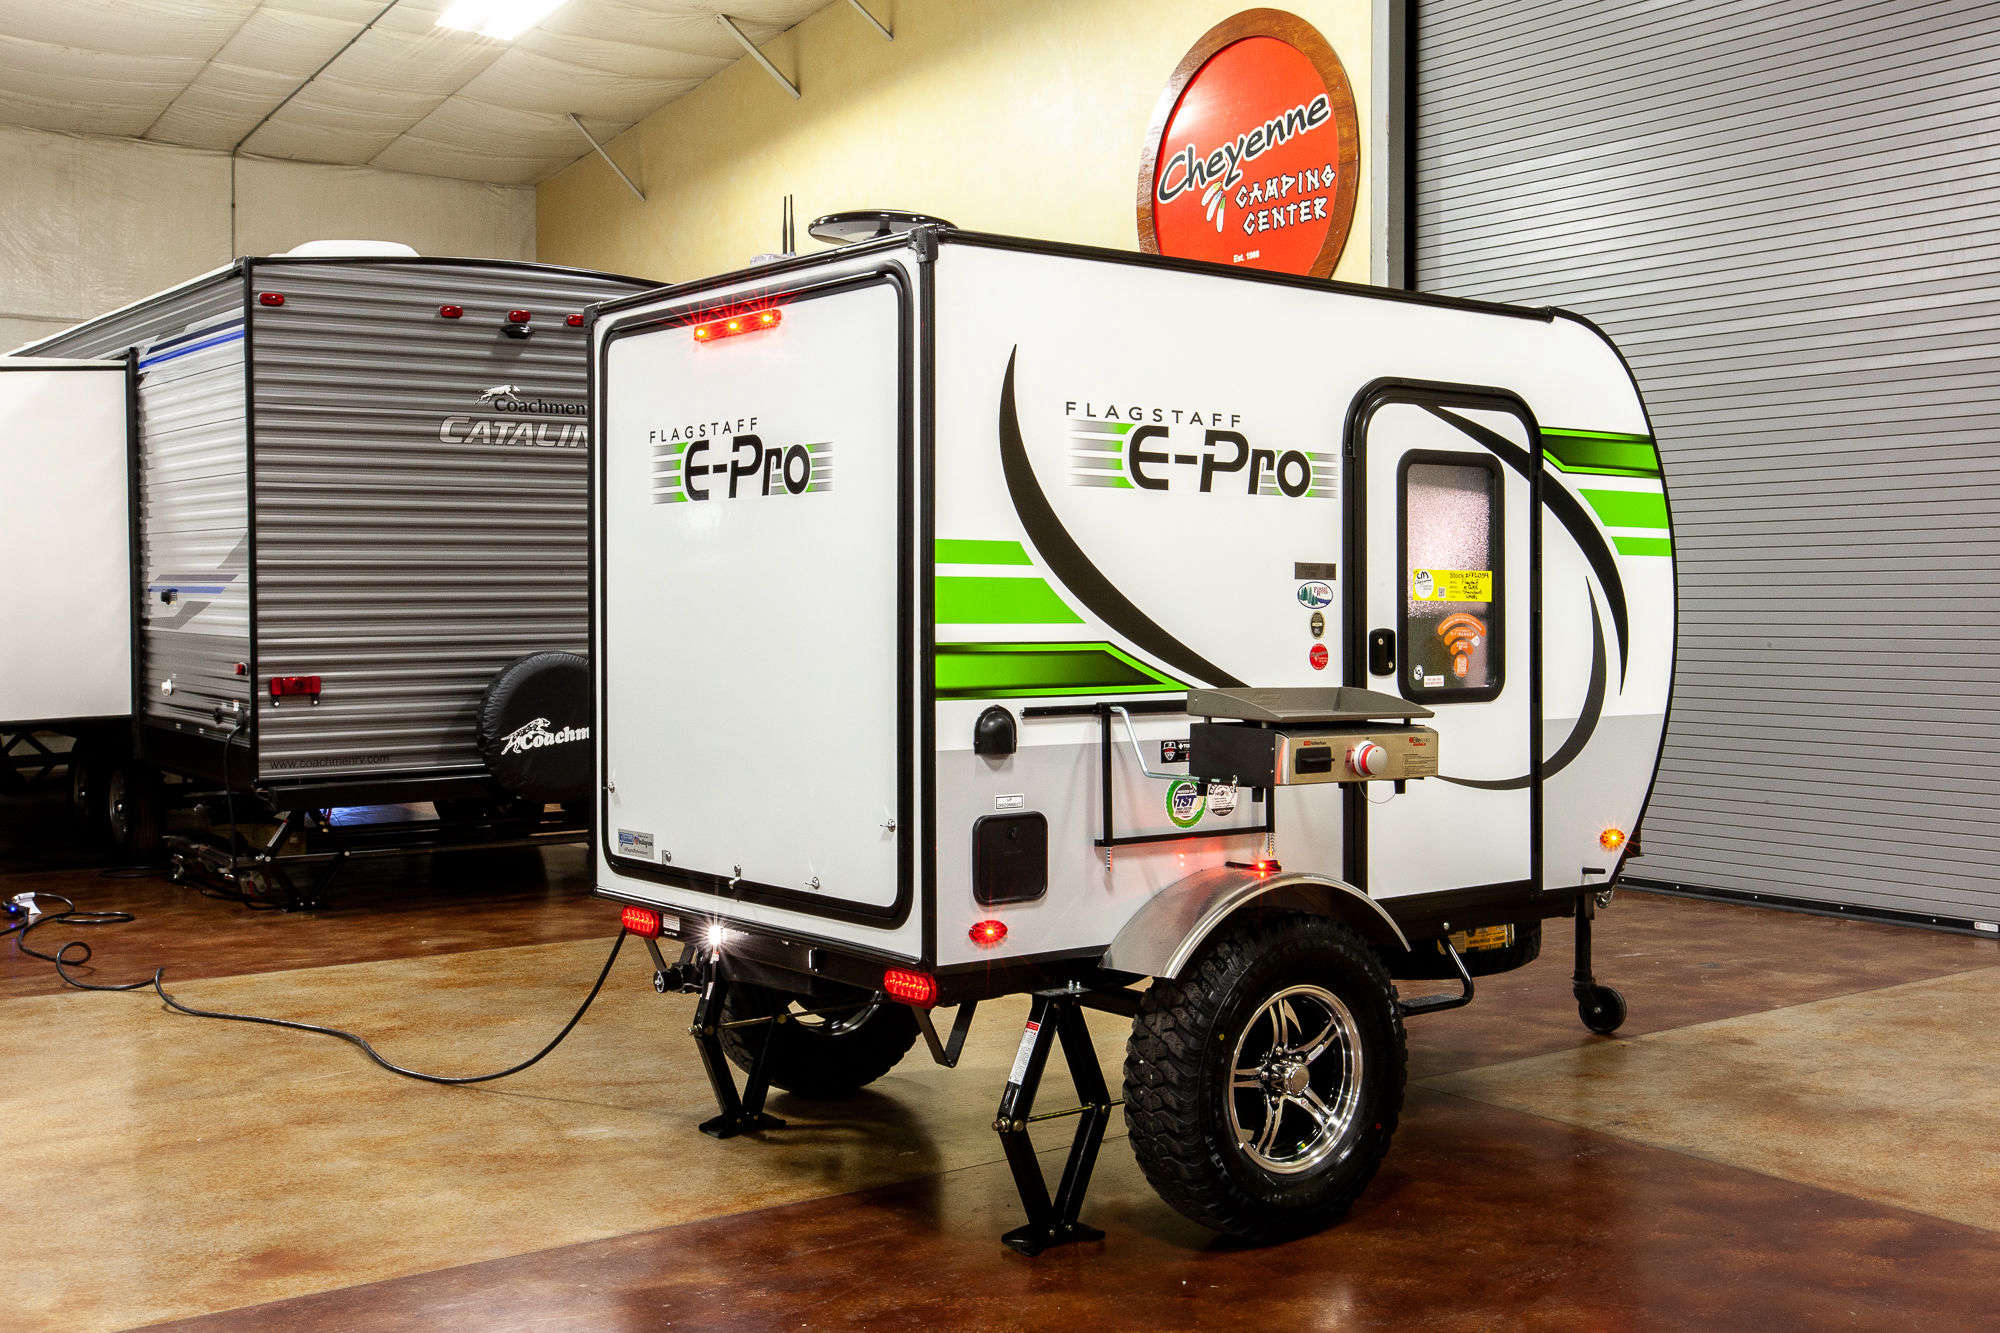 2020 Forest River Flagstaff E-Pro E12RK Travel Trailer Exterior Image